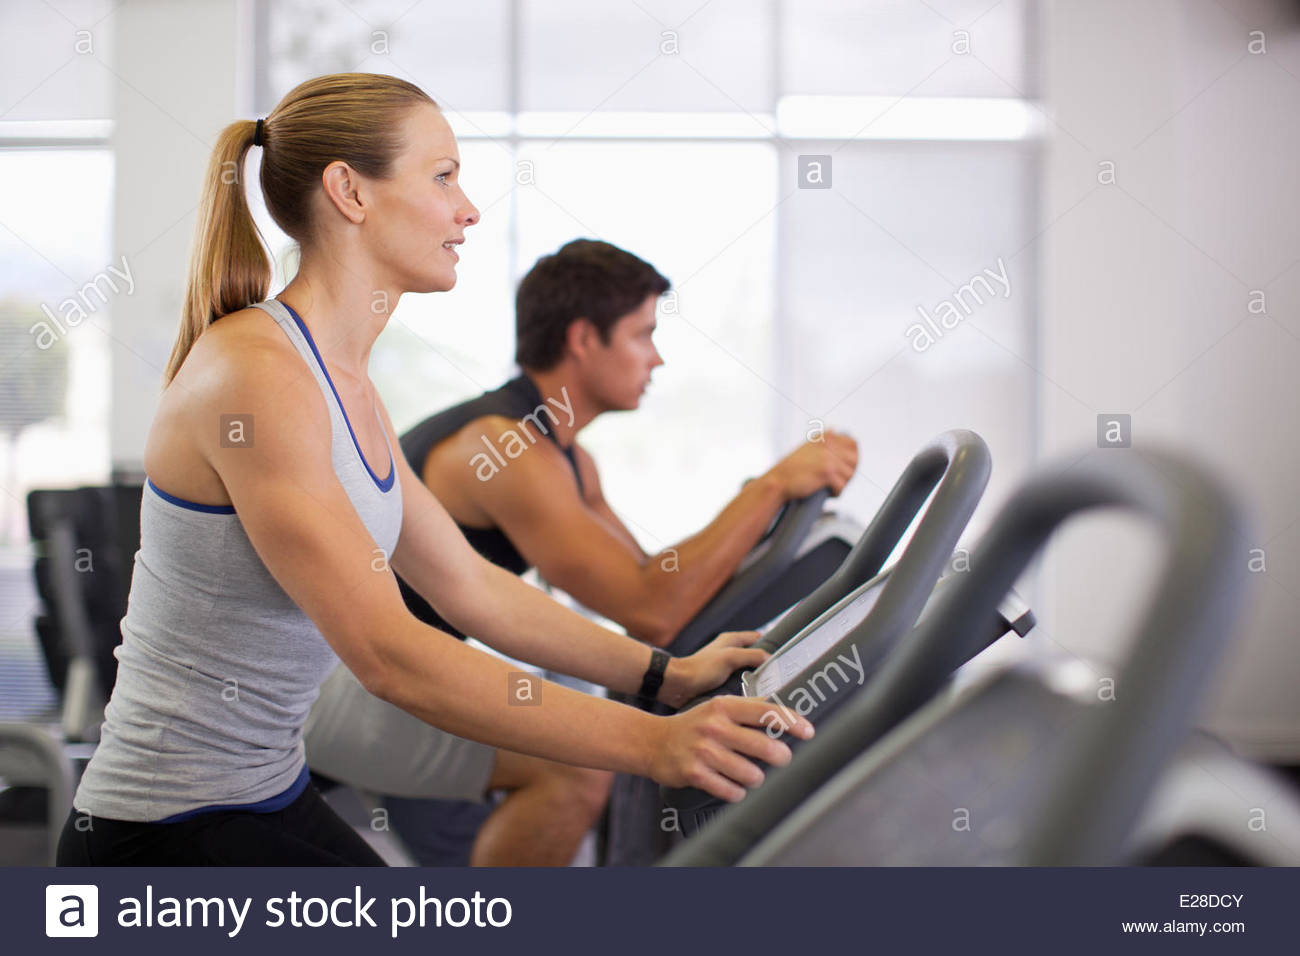 Two people on exercise bikes in gymnasium - Stock Image